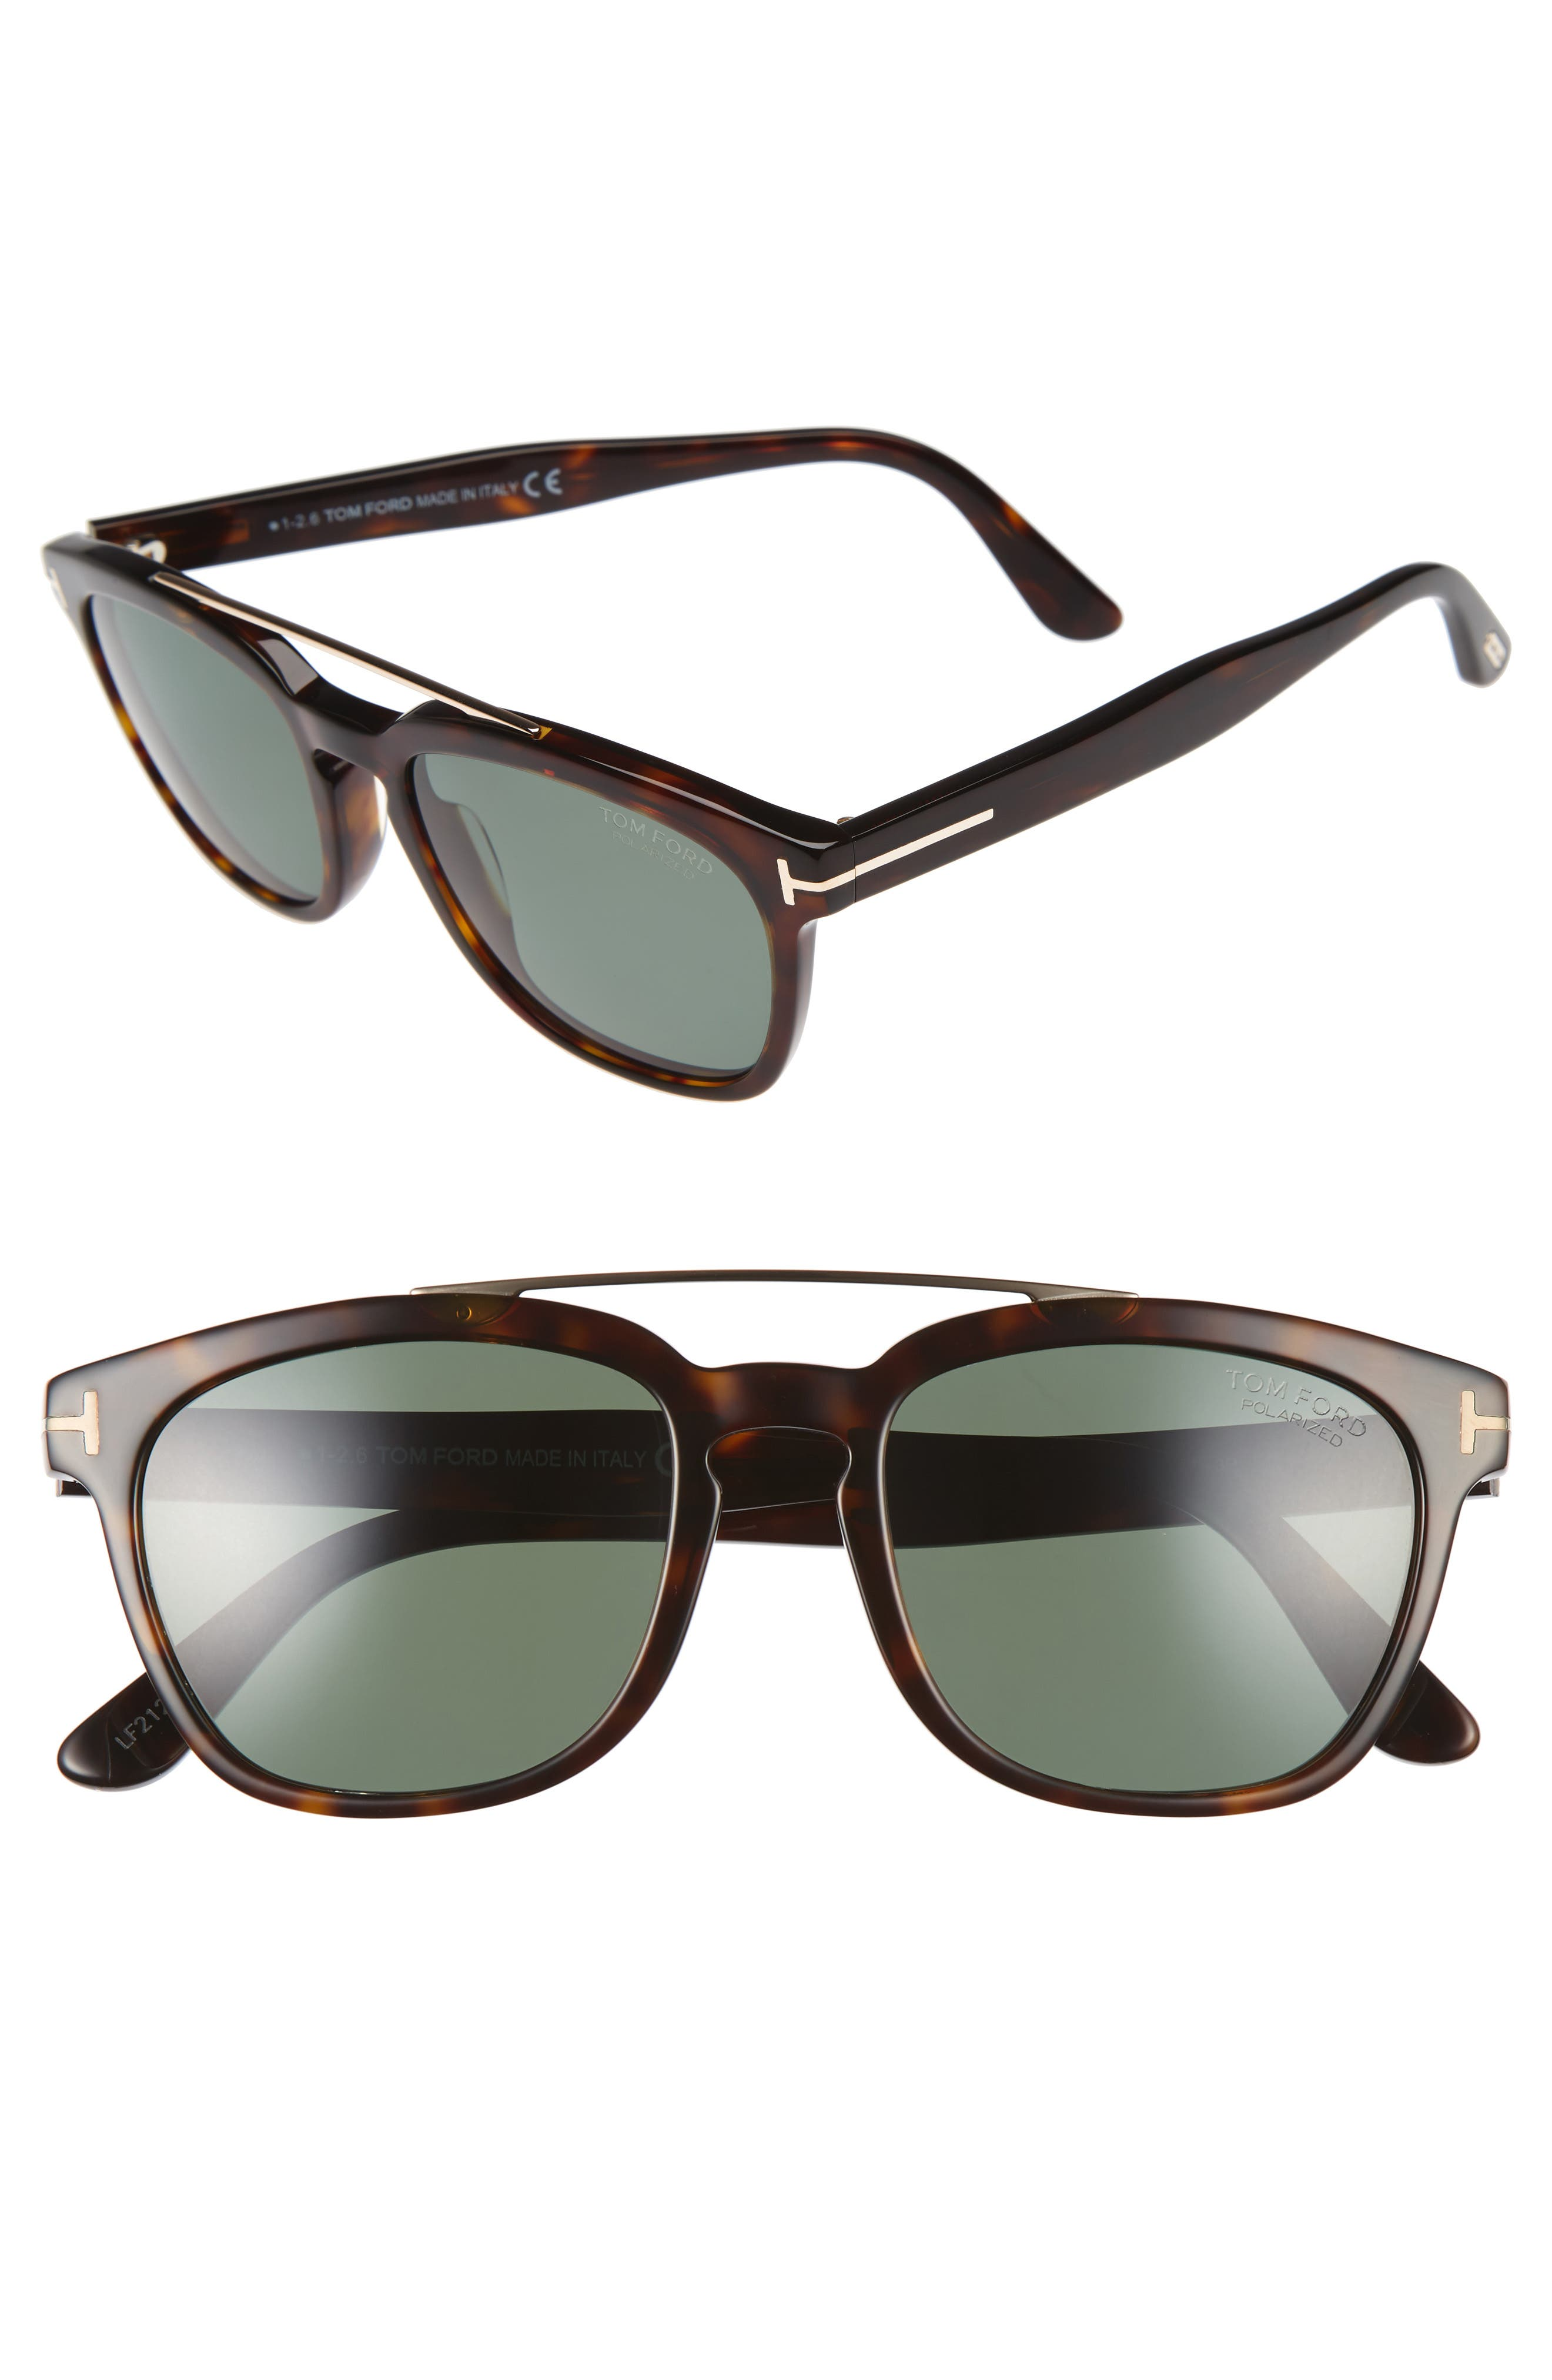 Tom Ford Holt 54mm Polarized Sunglasses